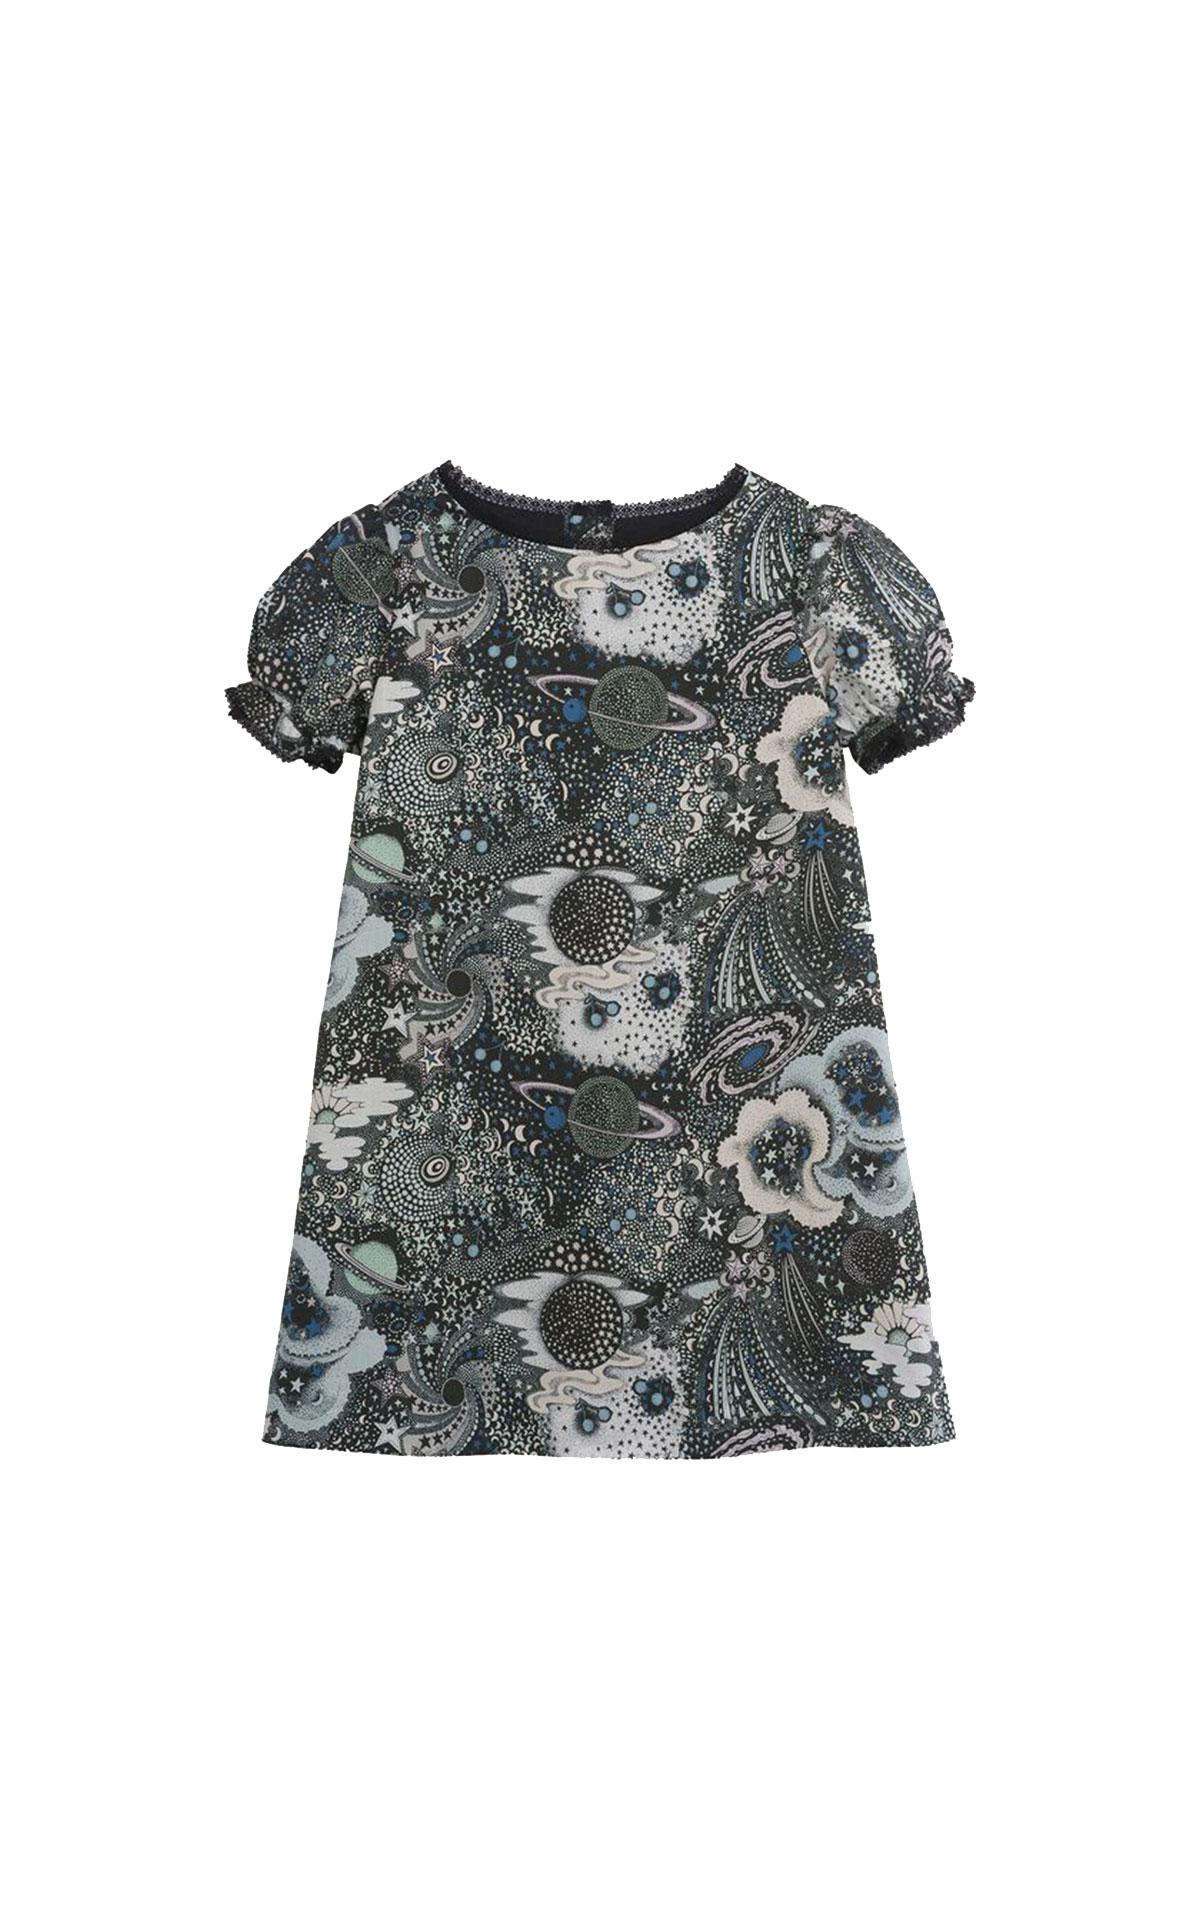 Bonpoint Space print dress from Bicester Village